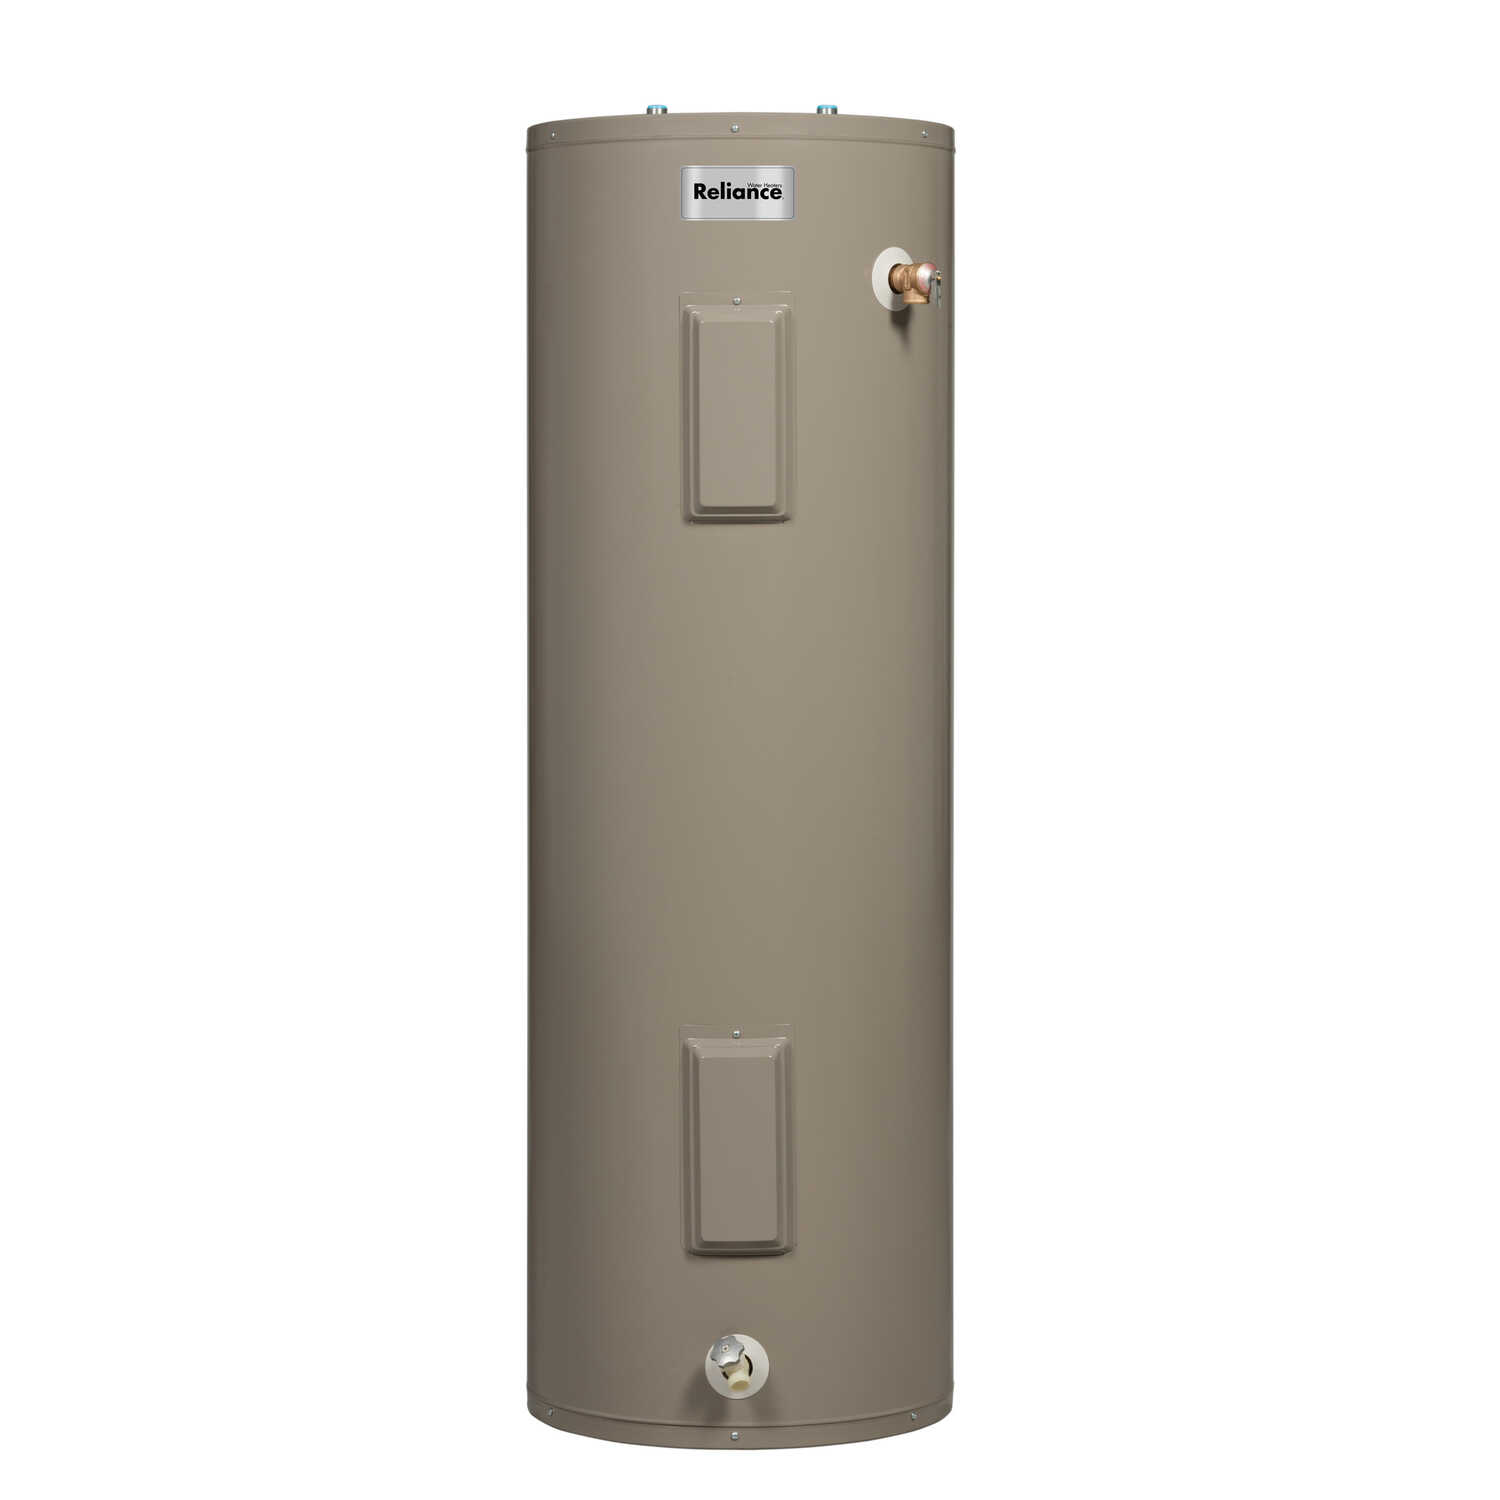 Reliance  Electric  Water Heater  65-1/4 in. H x 18 in. W x 18 in. L 40 gal.